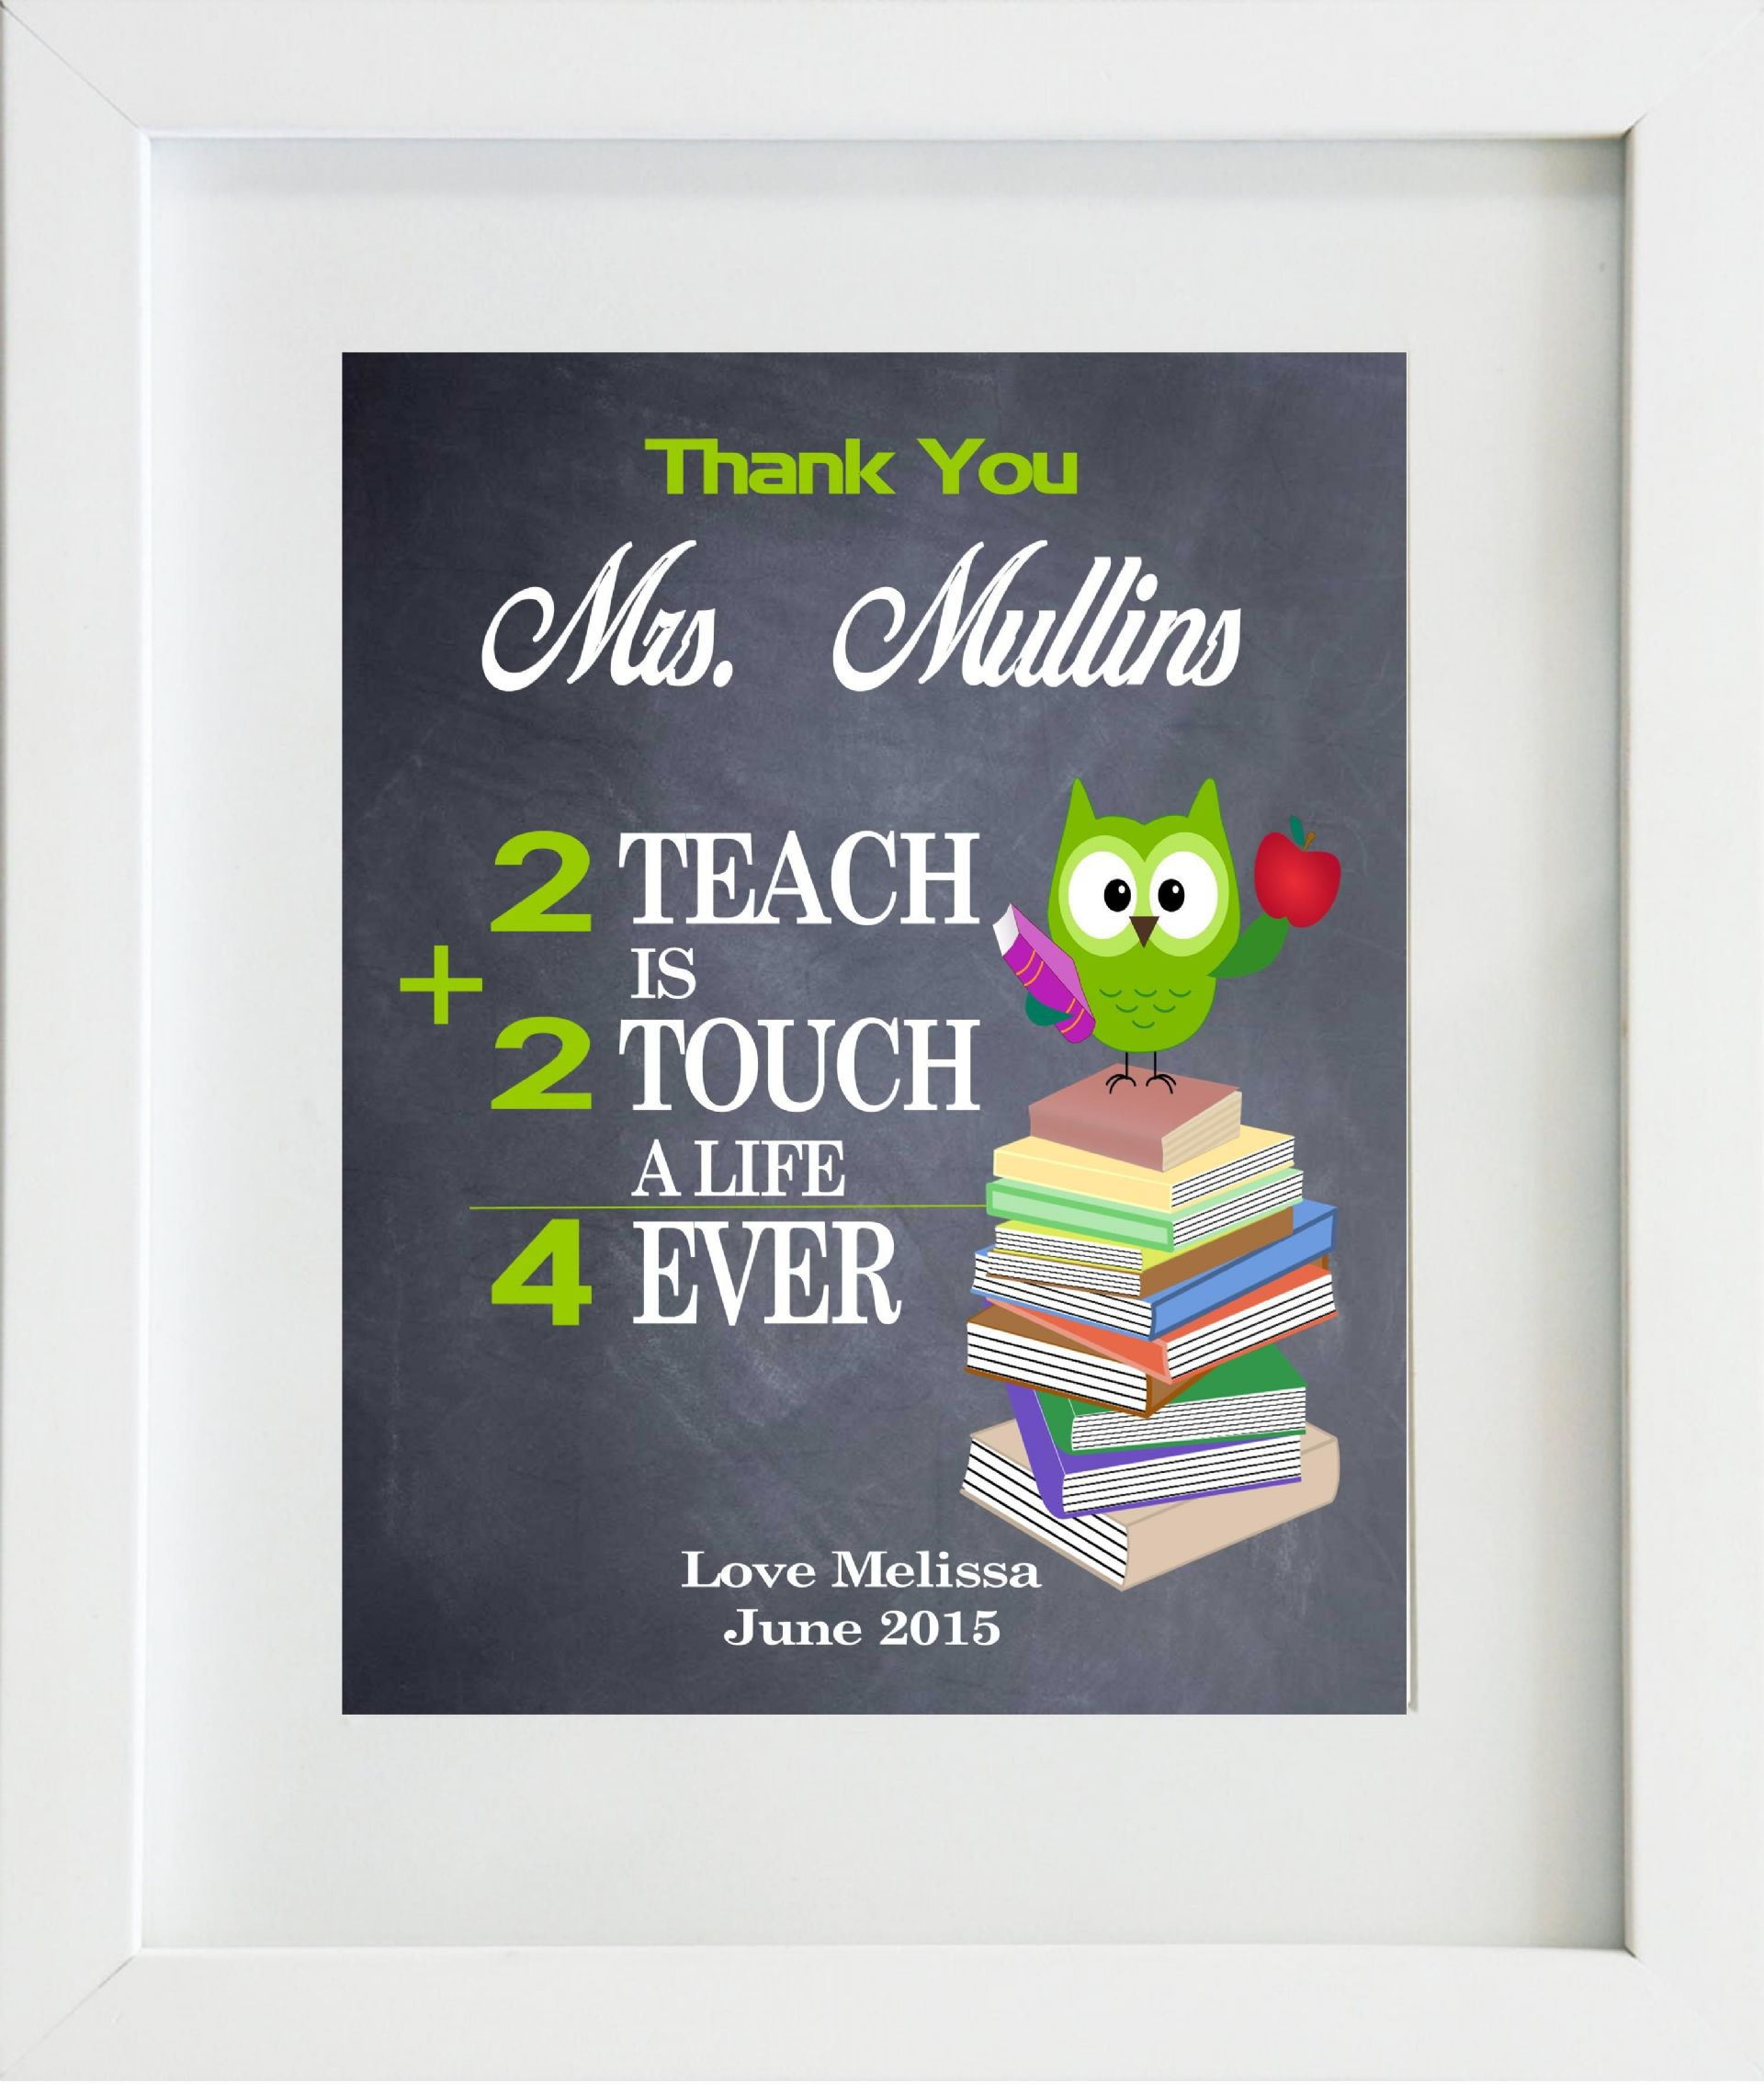 thank you teacher print design 9 - Teacher Pictures To Print